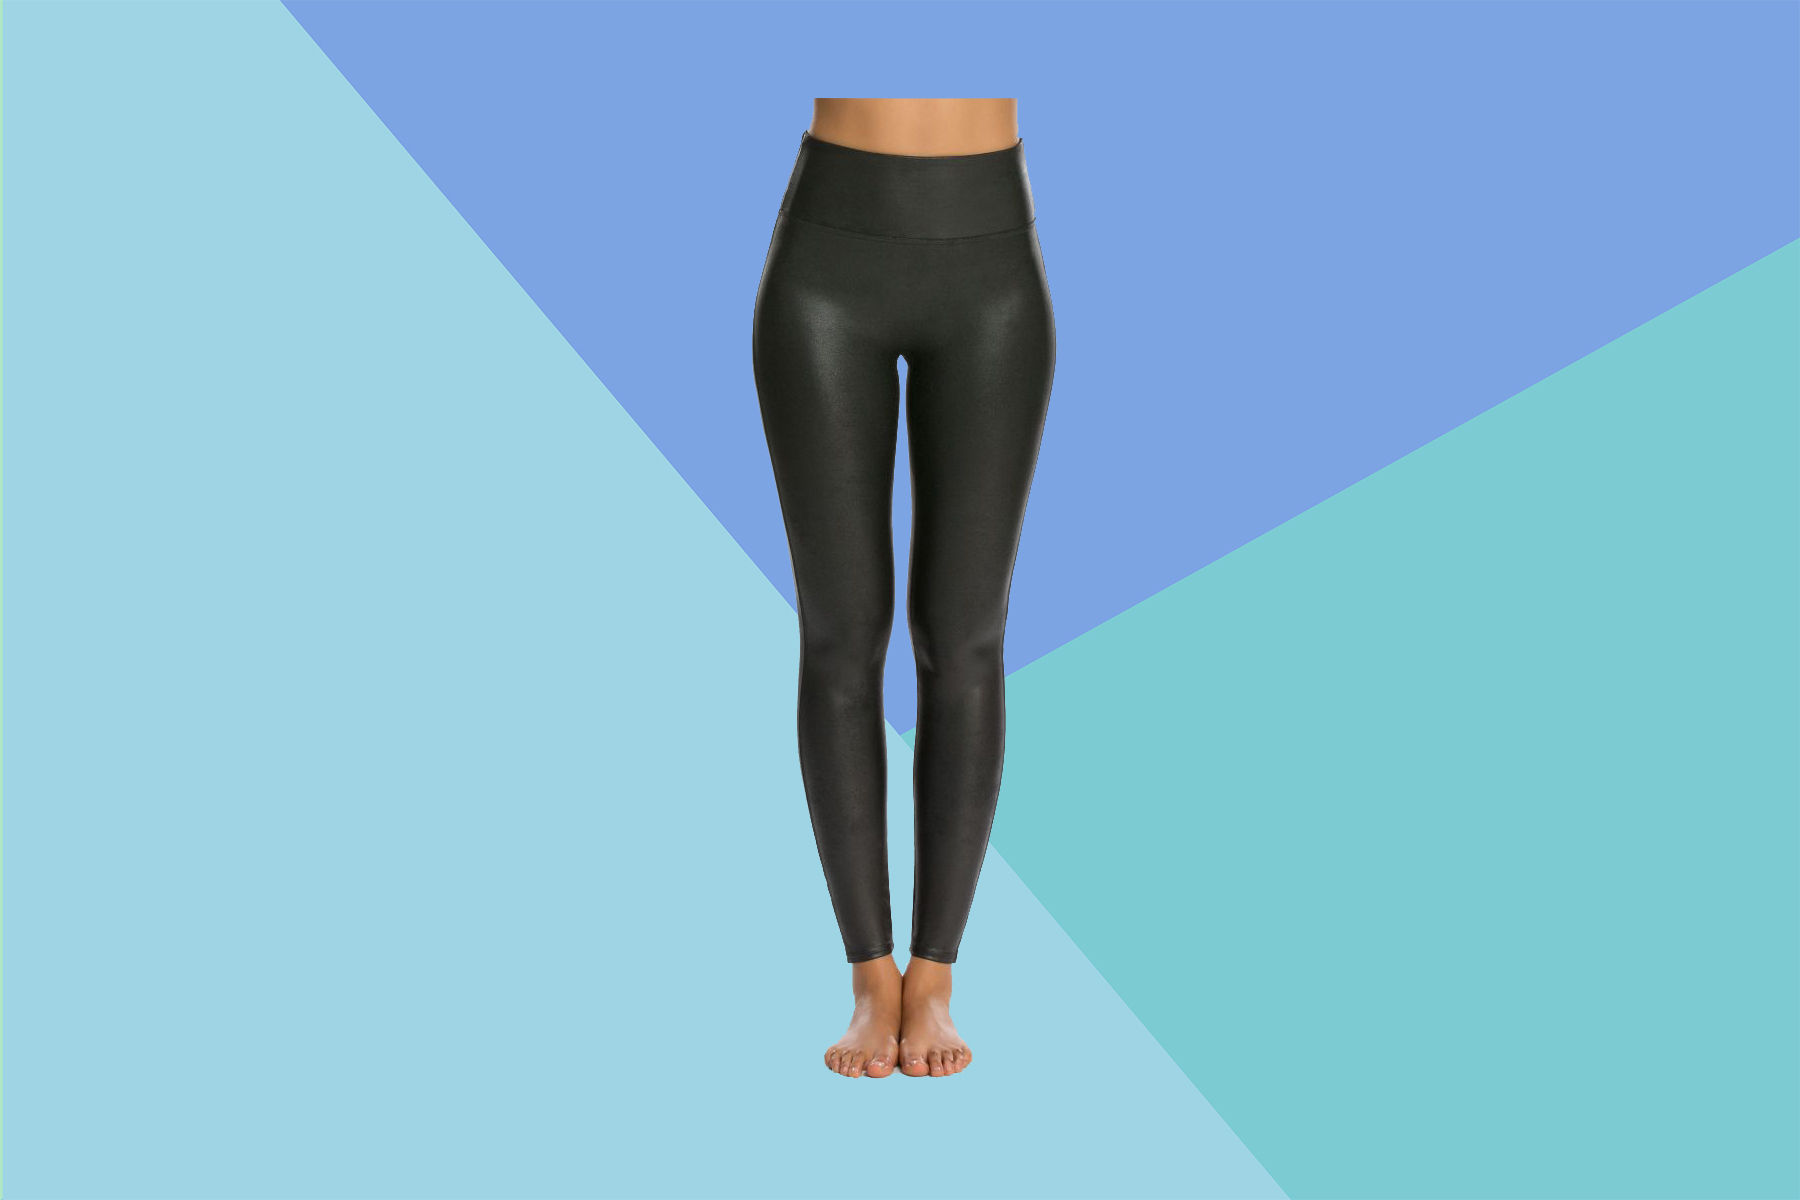 ce8582499f5ce 11 Top-Rated Black Leggings That Are So Comfortable, You'll Never Want to  Take Them Off